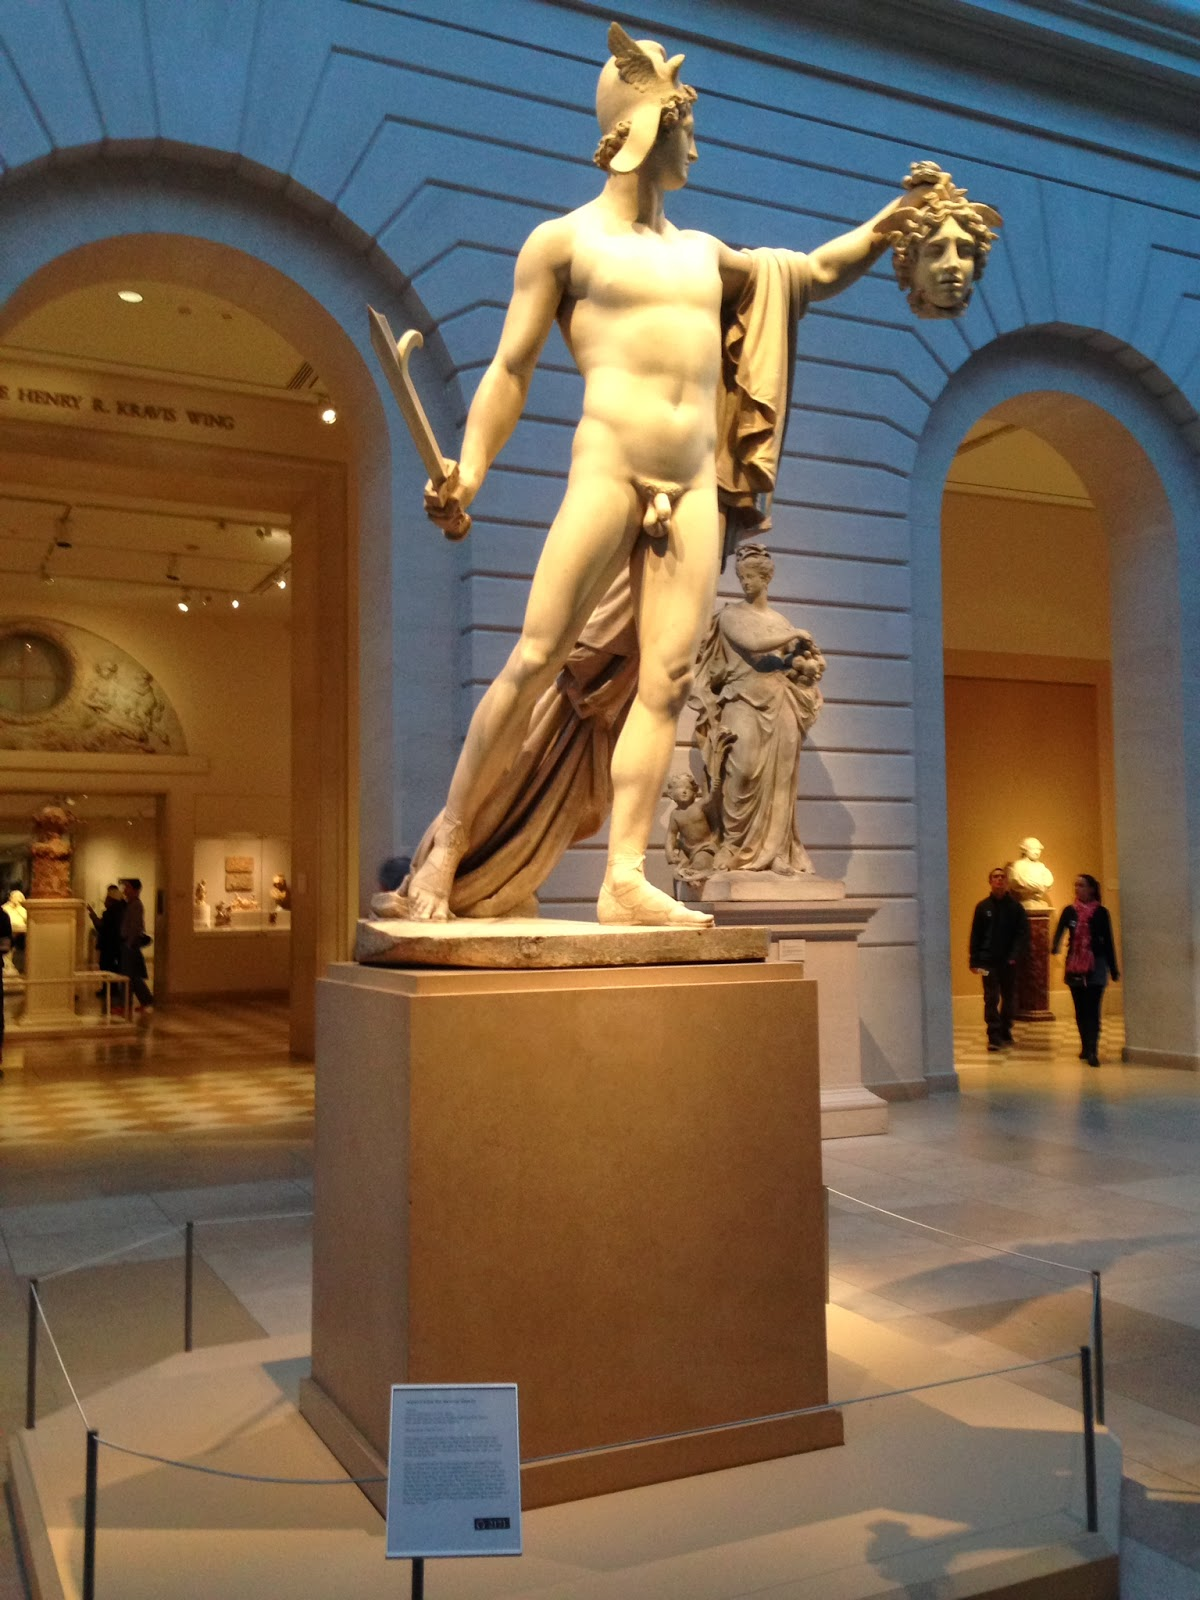 art museum experience essay You have to write an art essay read this sample to see what good writing looks like we can help you complete the essay by any deadline.